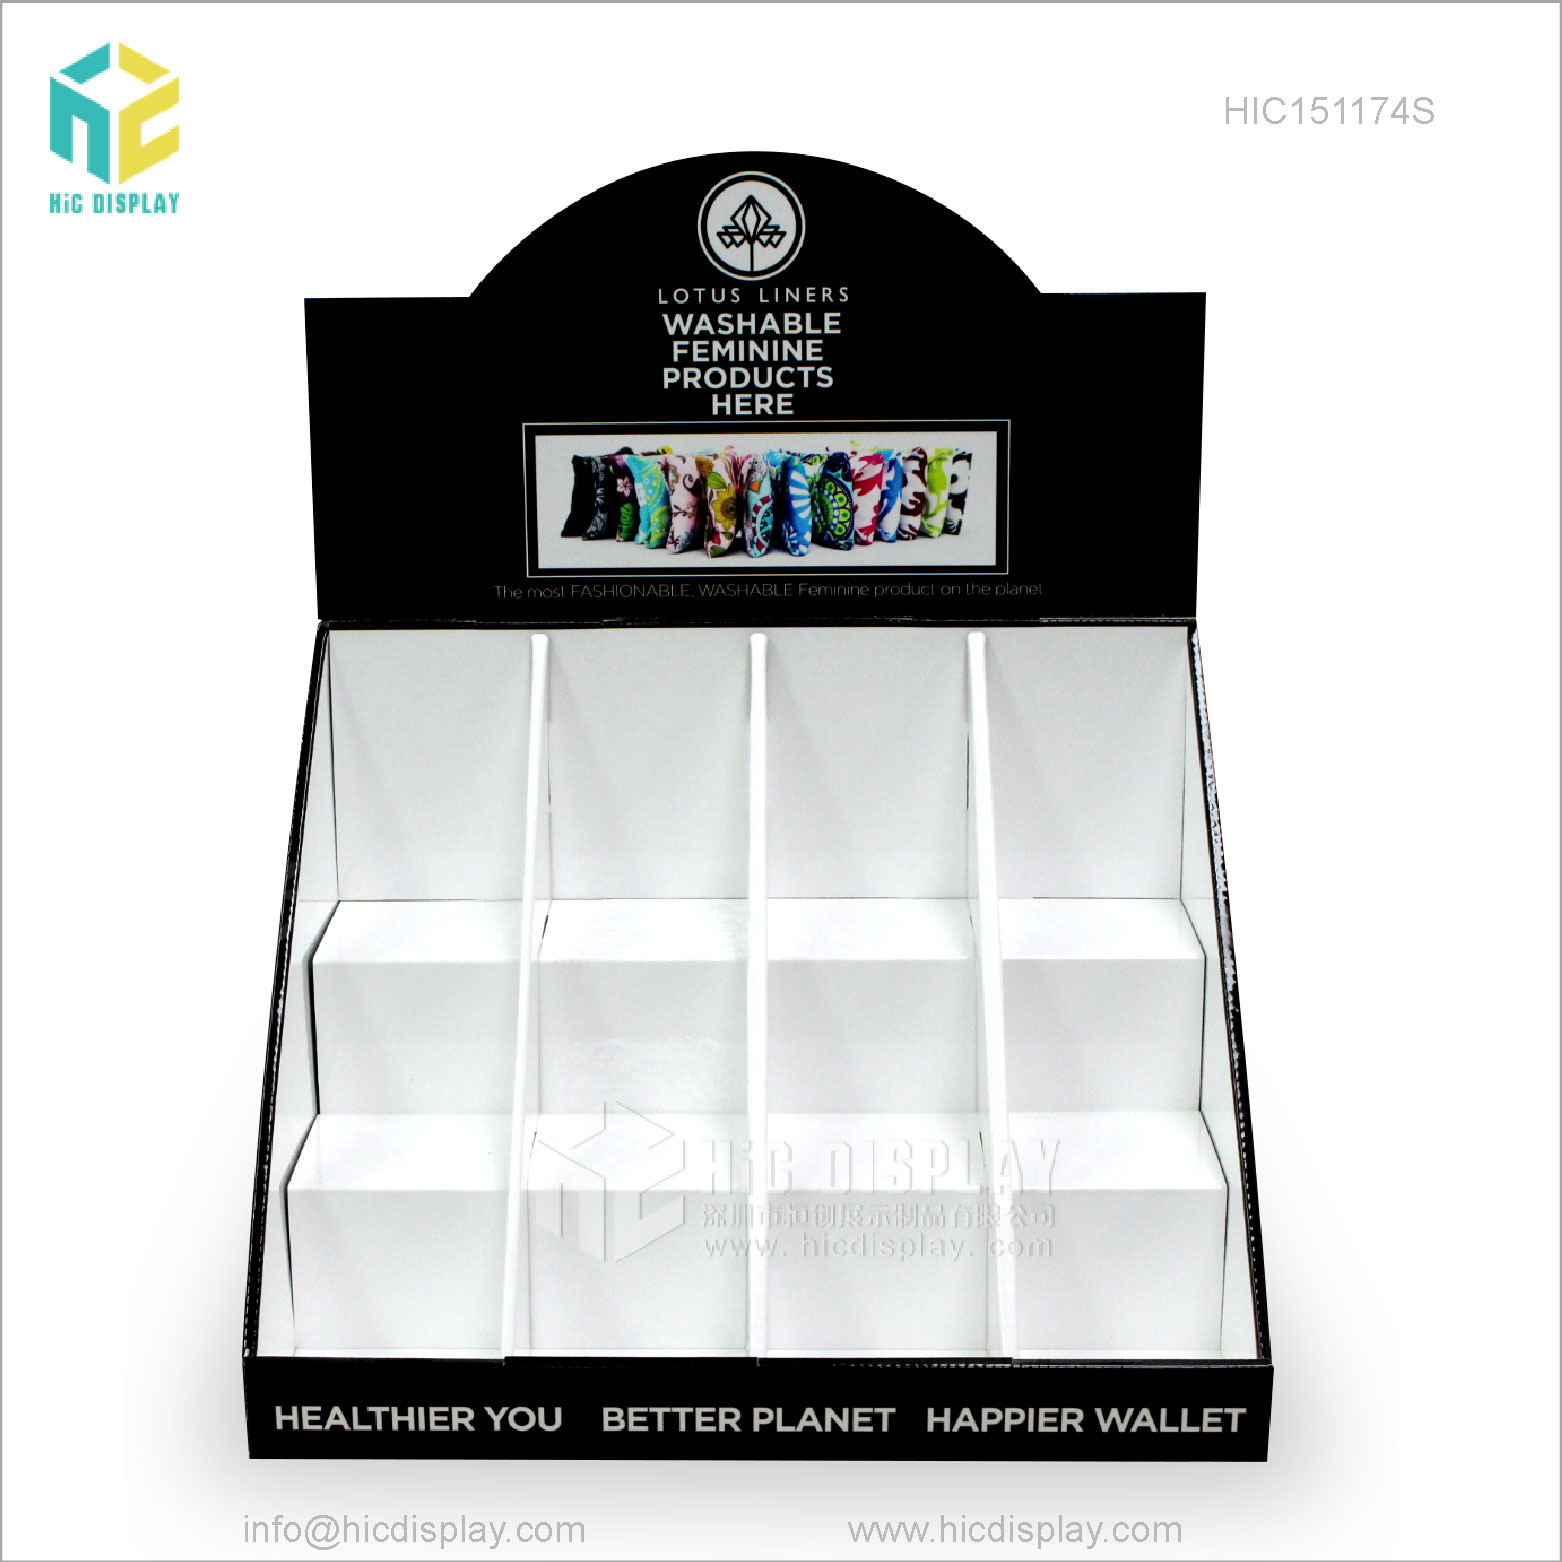 HIC Cardboard Countertop Display Box Paper Display Box